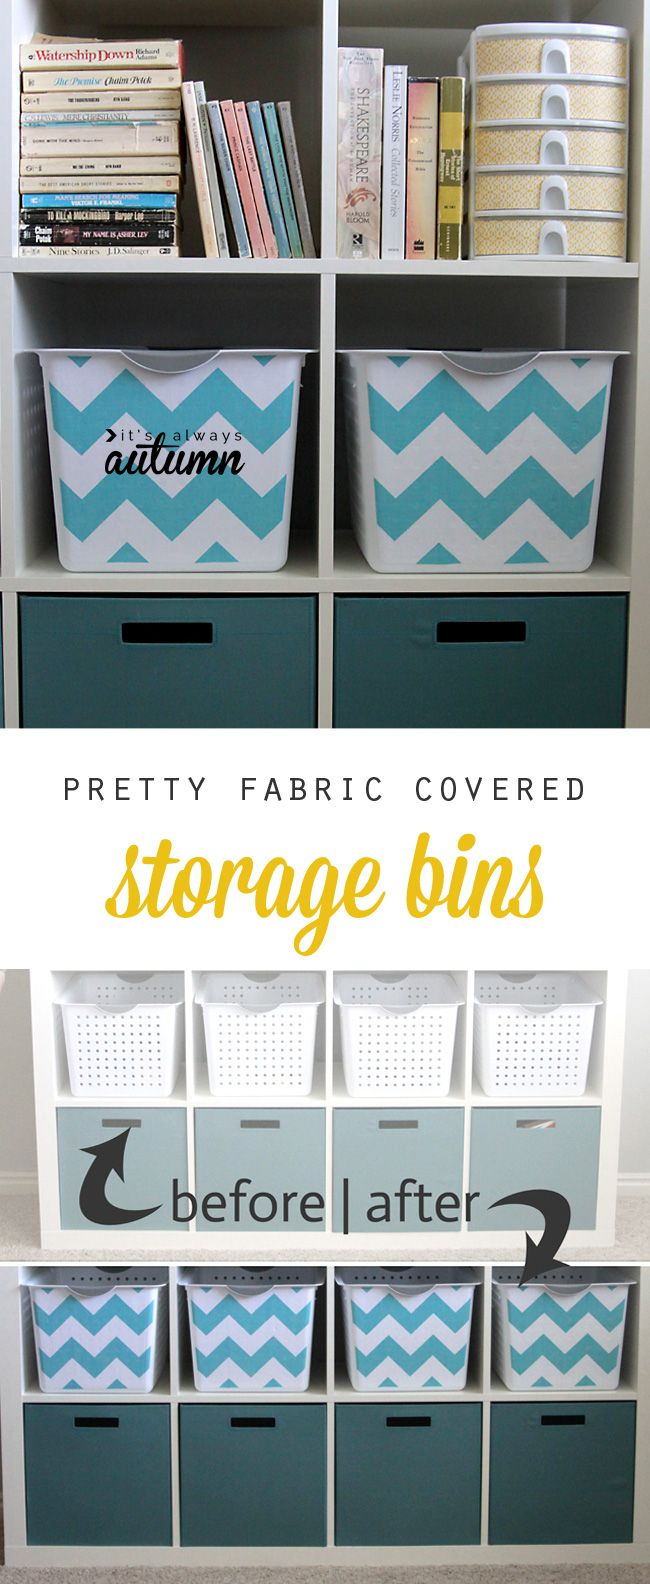 Turn Plastic Storage Bins Into Pretty Fabric Covered With This Easy Diy Free Cutting Template Included